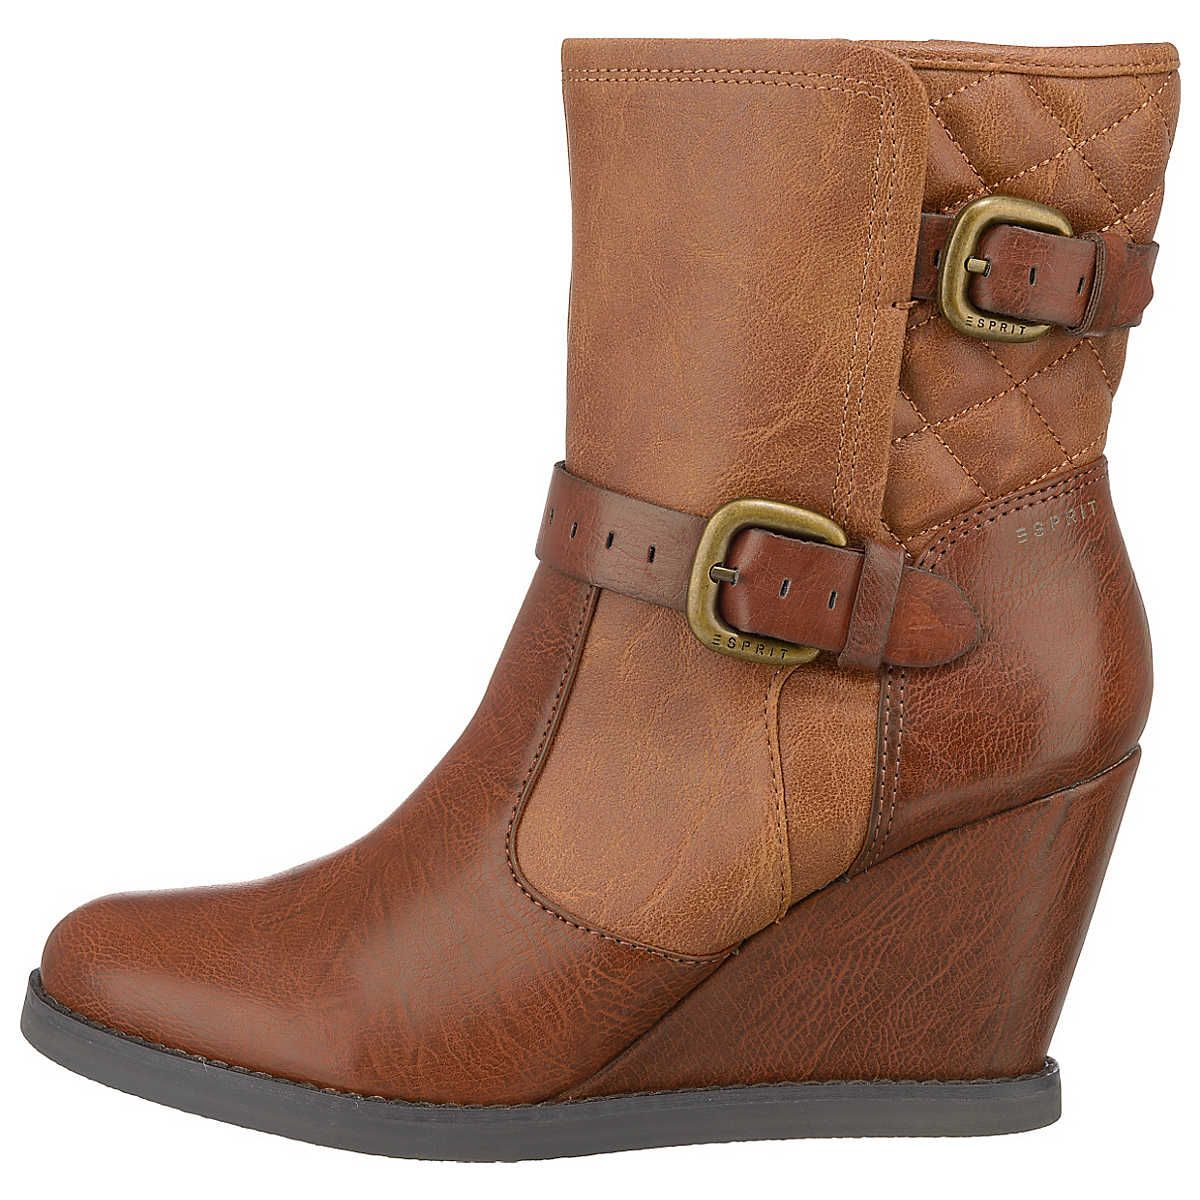 Esprit Wedge Stiefeletten Shoes Boots Shoes Boots Sandals Oh